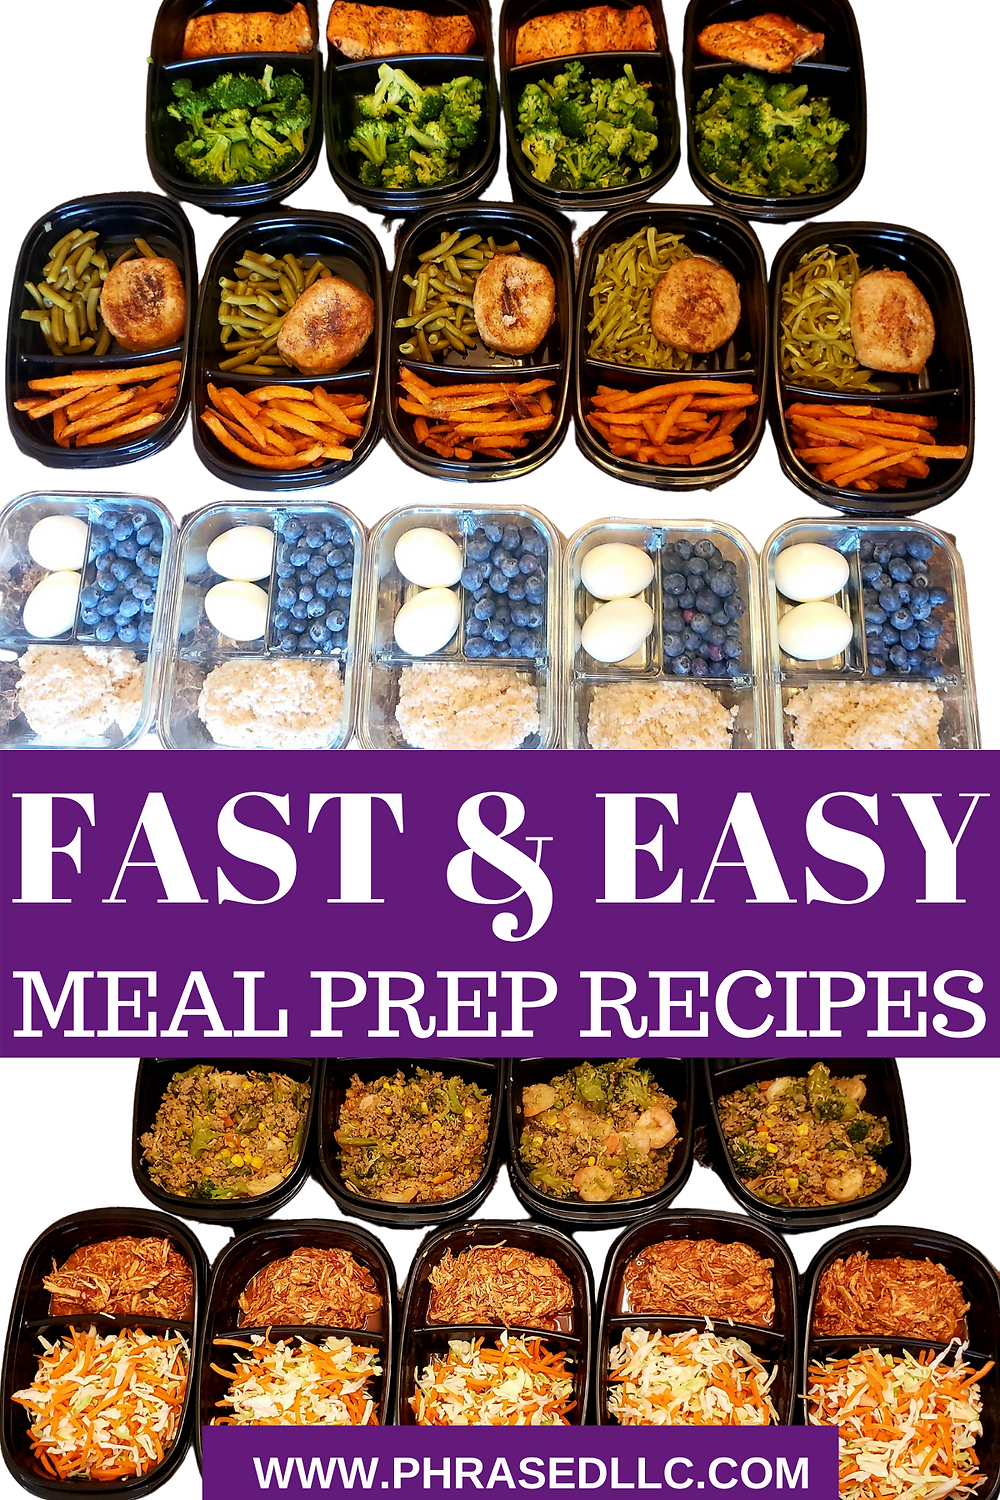 Fast and easy meal prep recipes for busy moms who want to be fit and healthy, but are short on time.